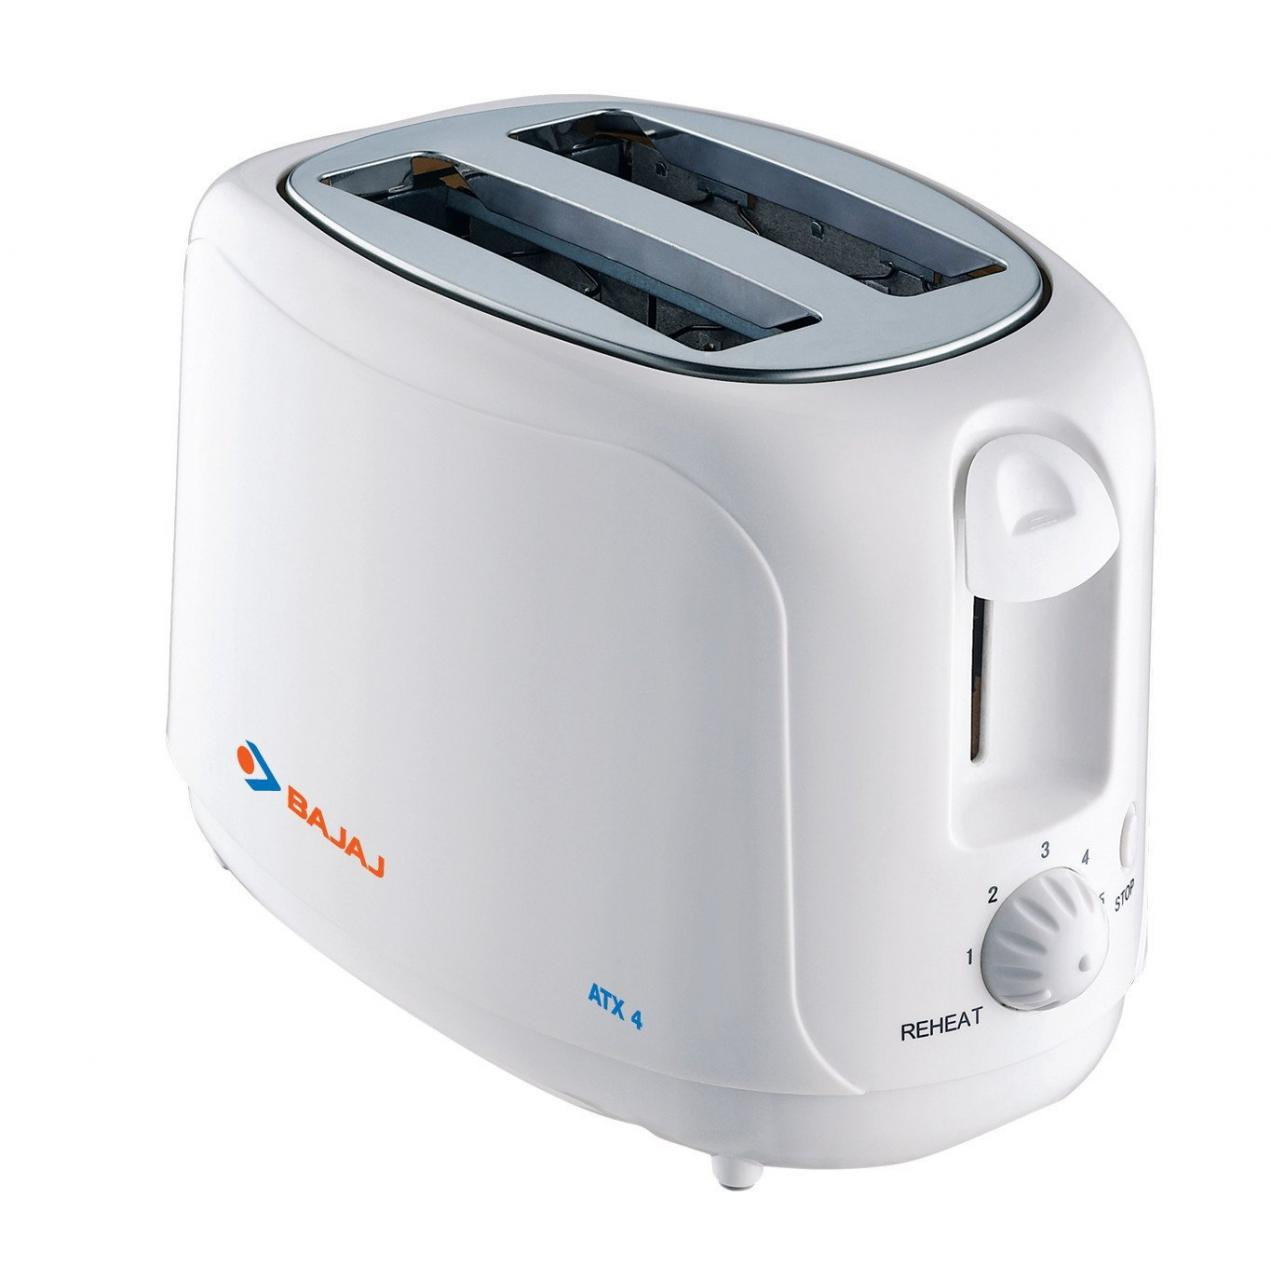 Pop Up Toaster With Oven ~ Top pop up toaster brand in india reviewsellers